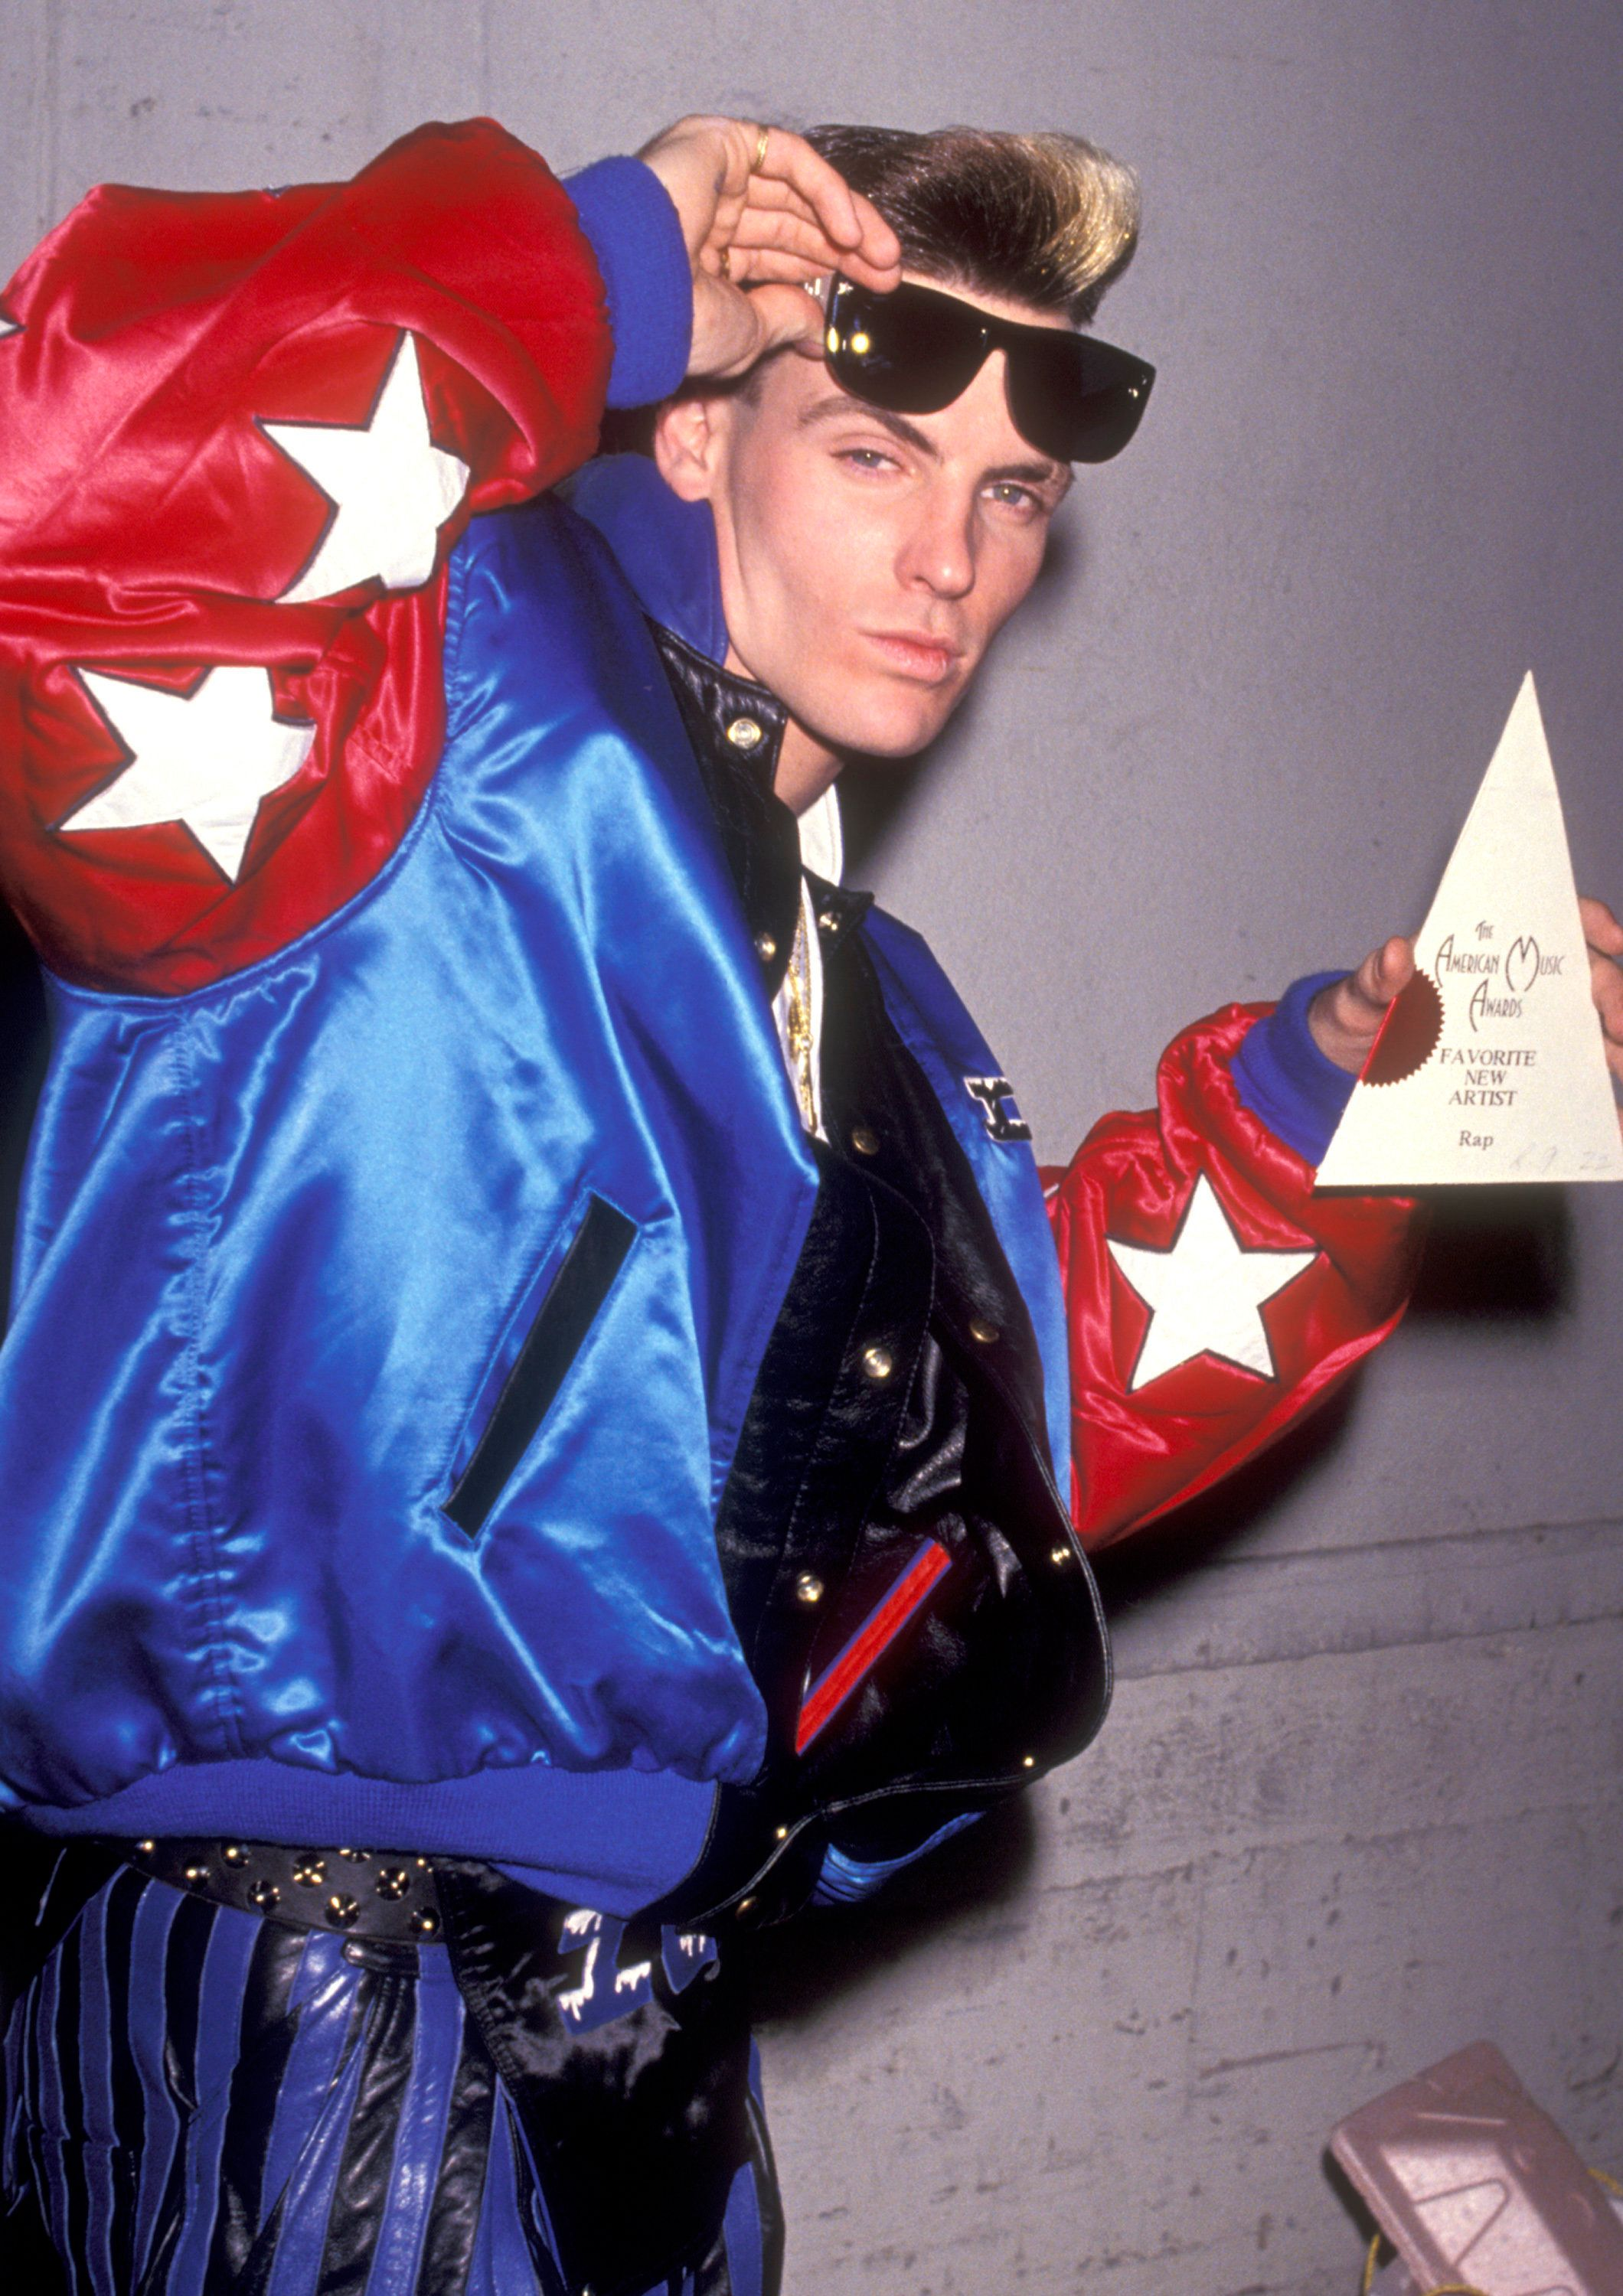 LOS ANGELES - JANUARY 28:  Singer Vanilla Ice attends the 18th Annual American Music Awards on January 28, 1991 at Shrine Auditorium in Los Angeles, California. (Photo by Ron Galella, Ltd/WireImage)